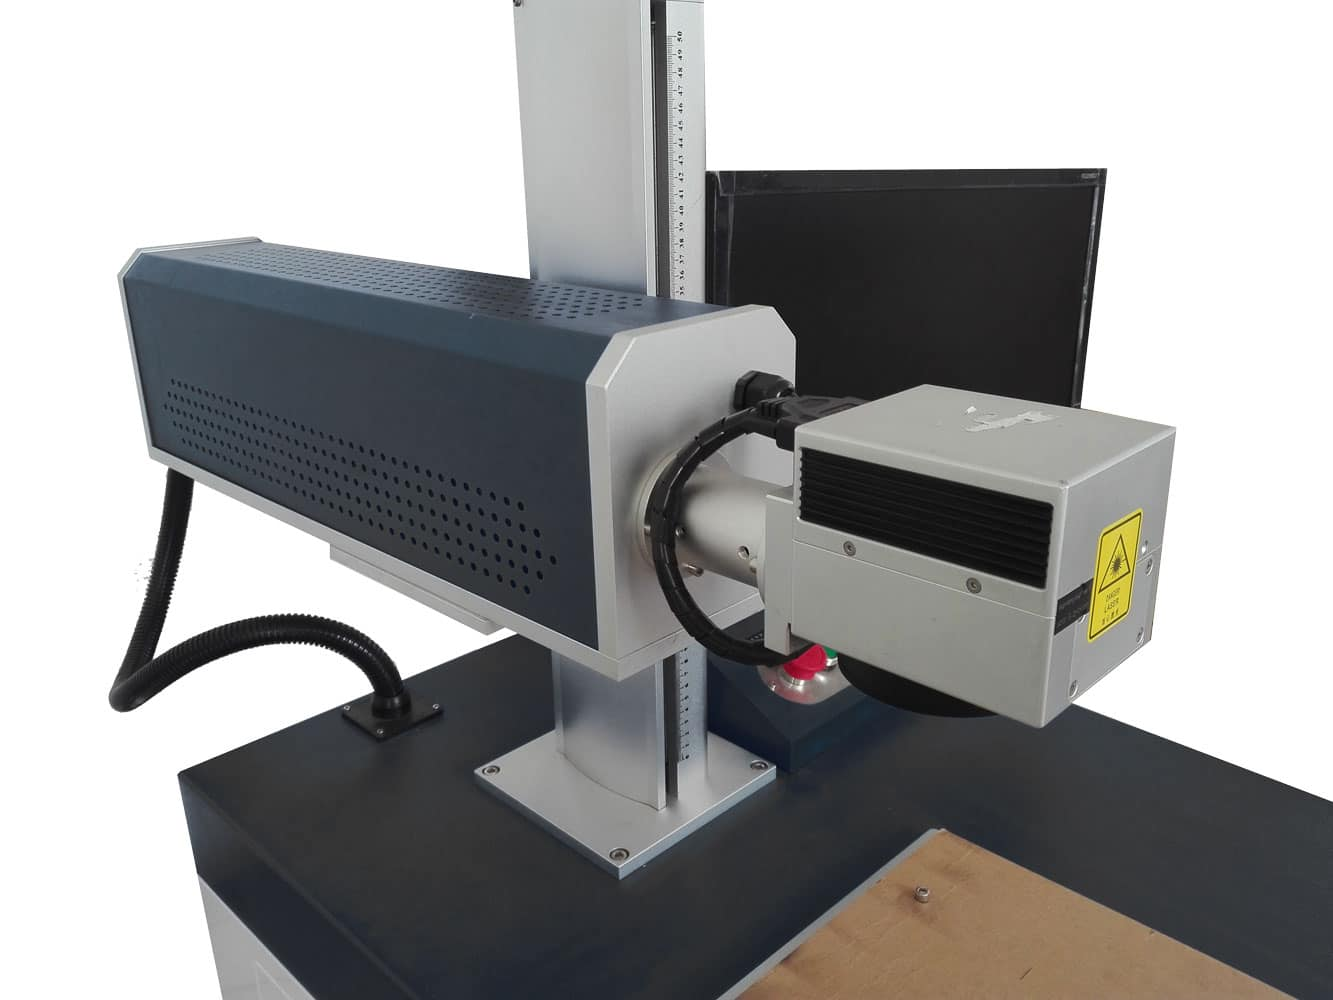 high-speed co2 galvo laser graveermachine - metaquip bv